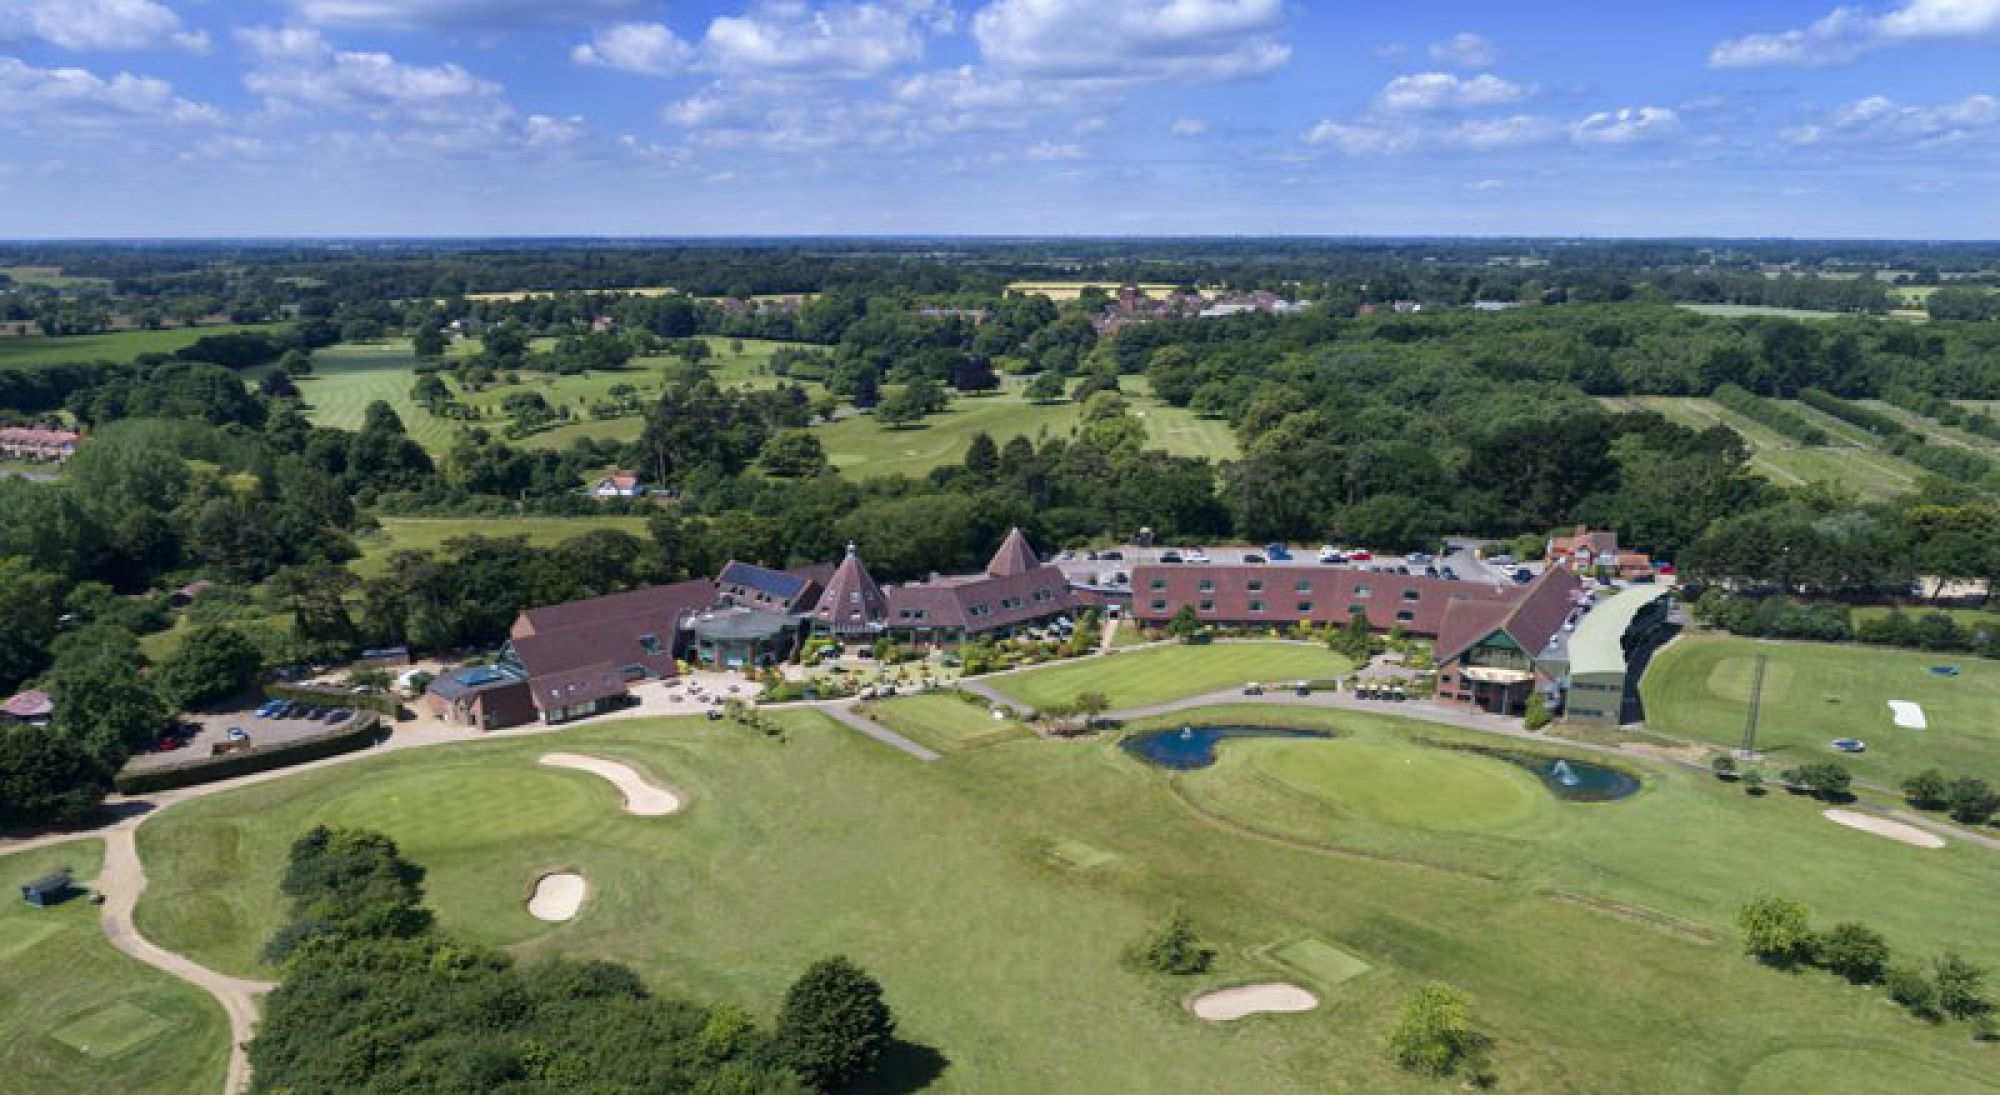 Ufford Park Woodbridge Golf includes lots of the most popular golf course around Suffolk